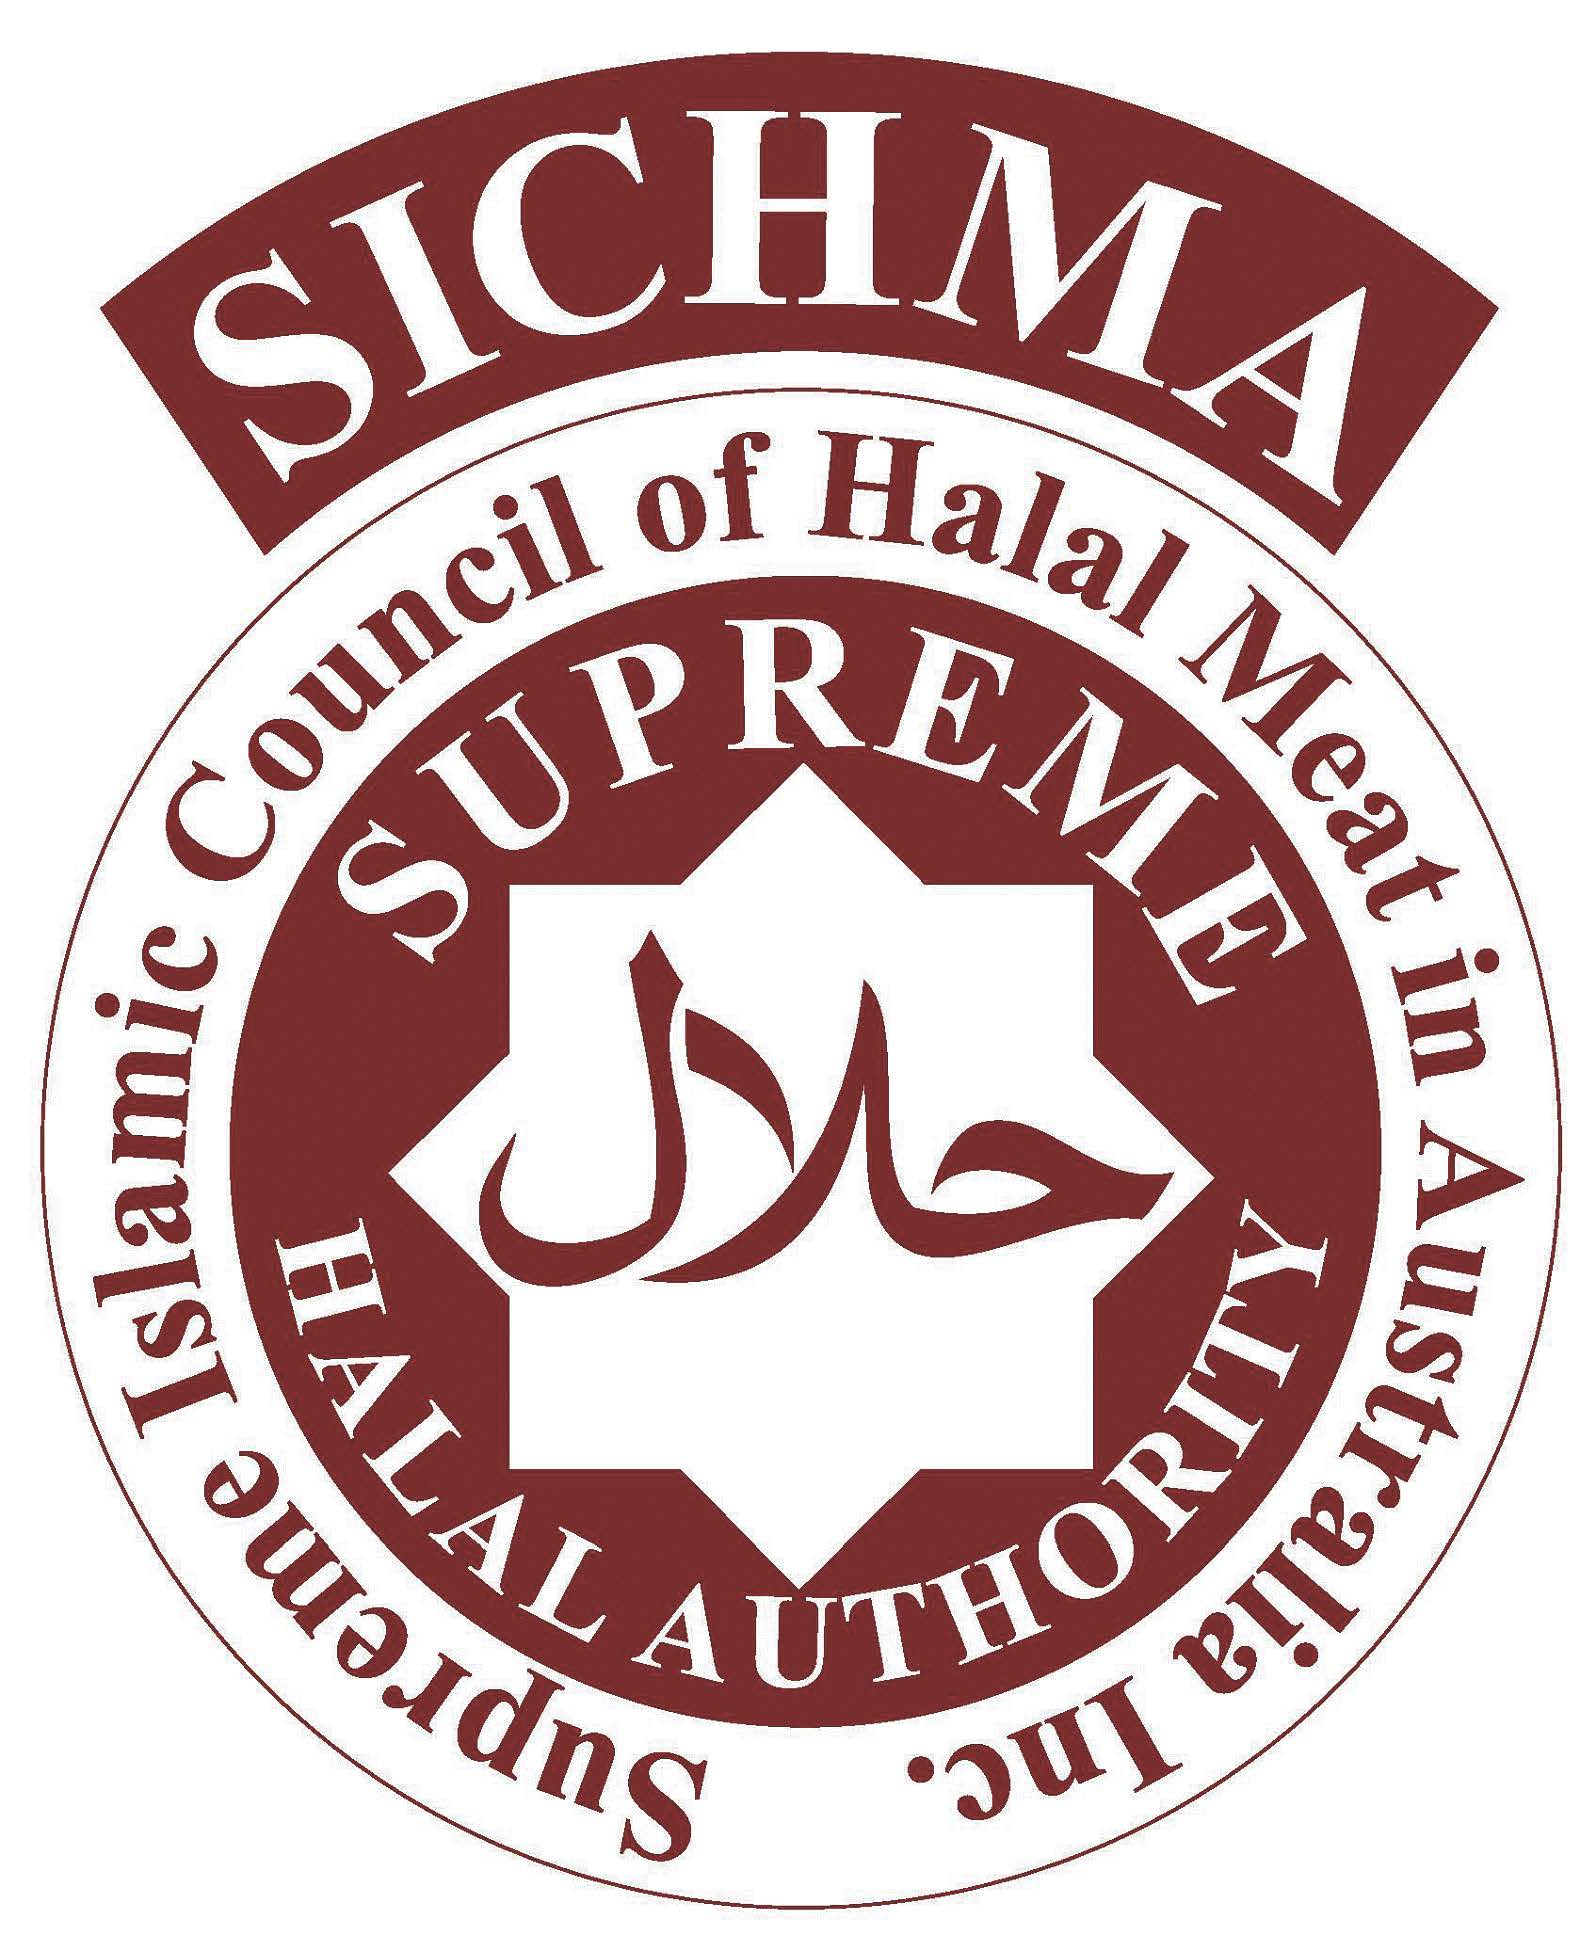 SICHMA- Supreme Islamic Council of Halal Meat in Australia